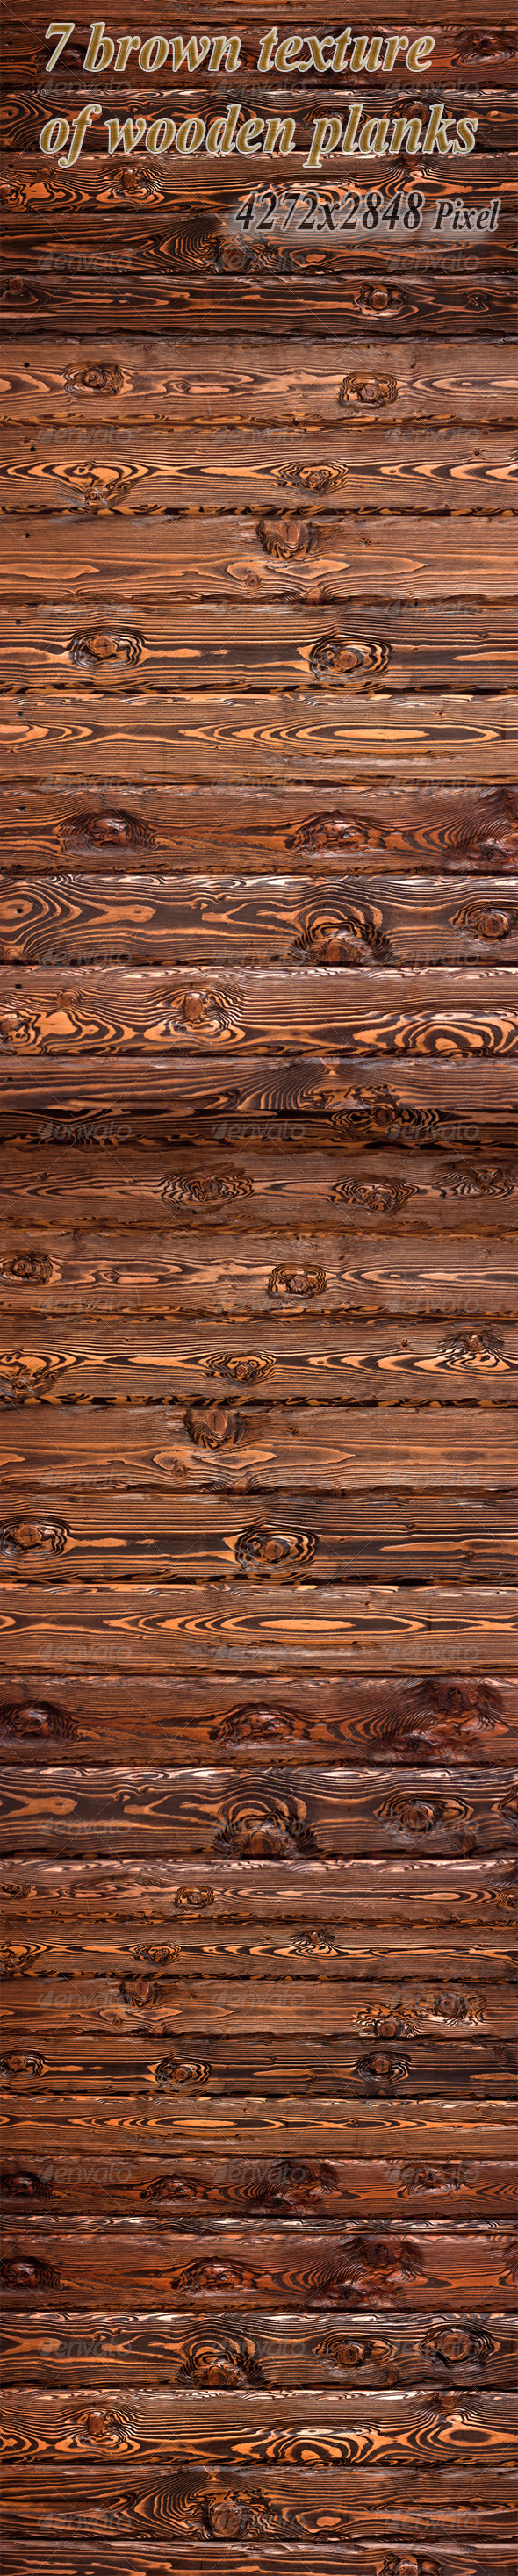 GraphicRiver Seven Brown Texture of Wooden Planks 3429770